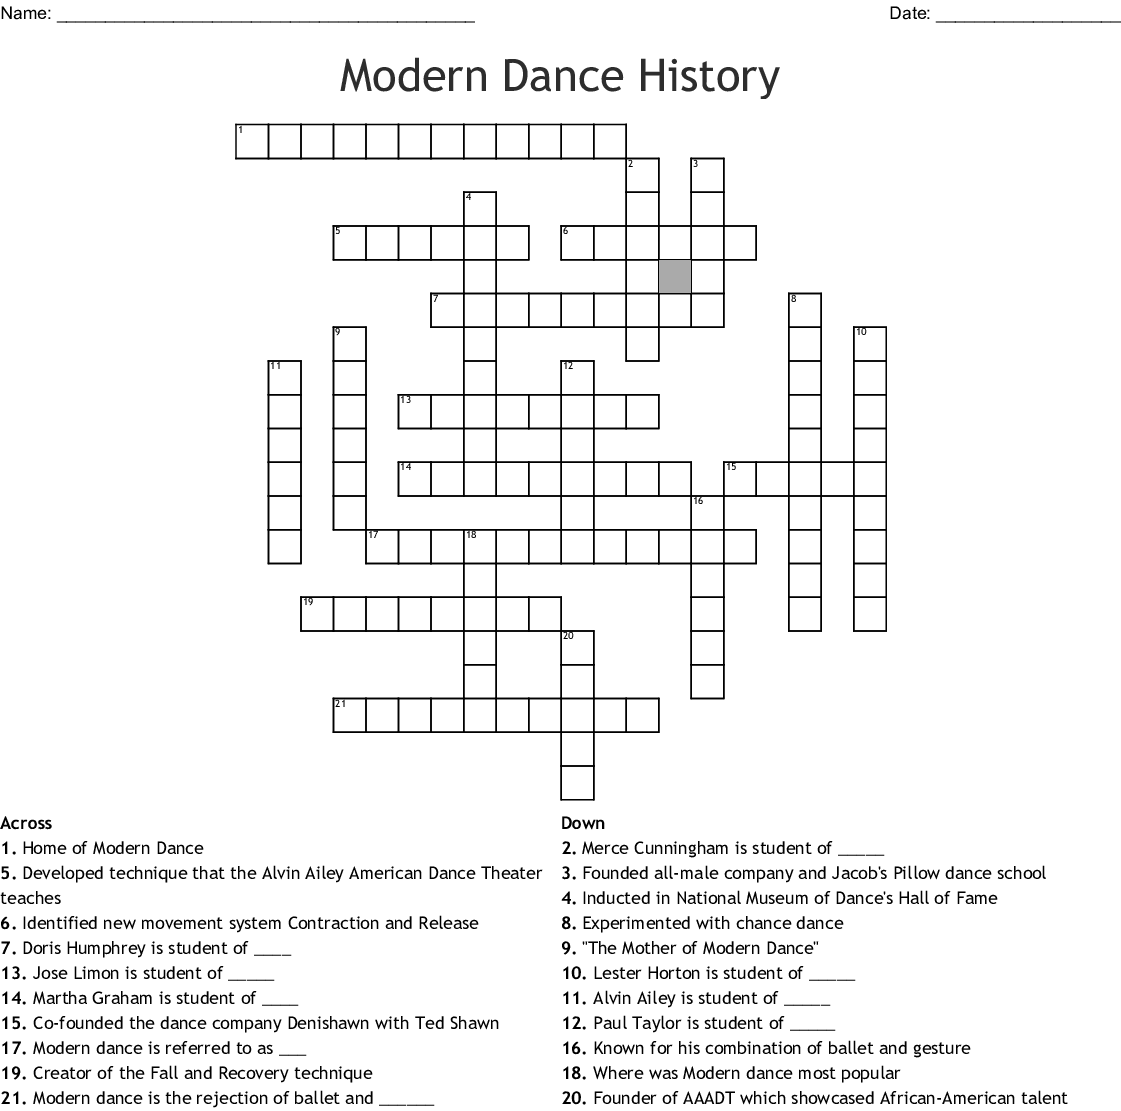 graphic about Black History Crossword Puzzle Printable identify Innovative Dance Historical past Crossword - WordMint